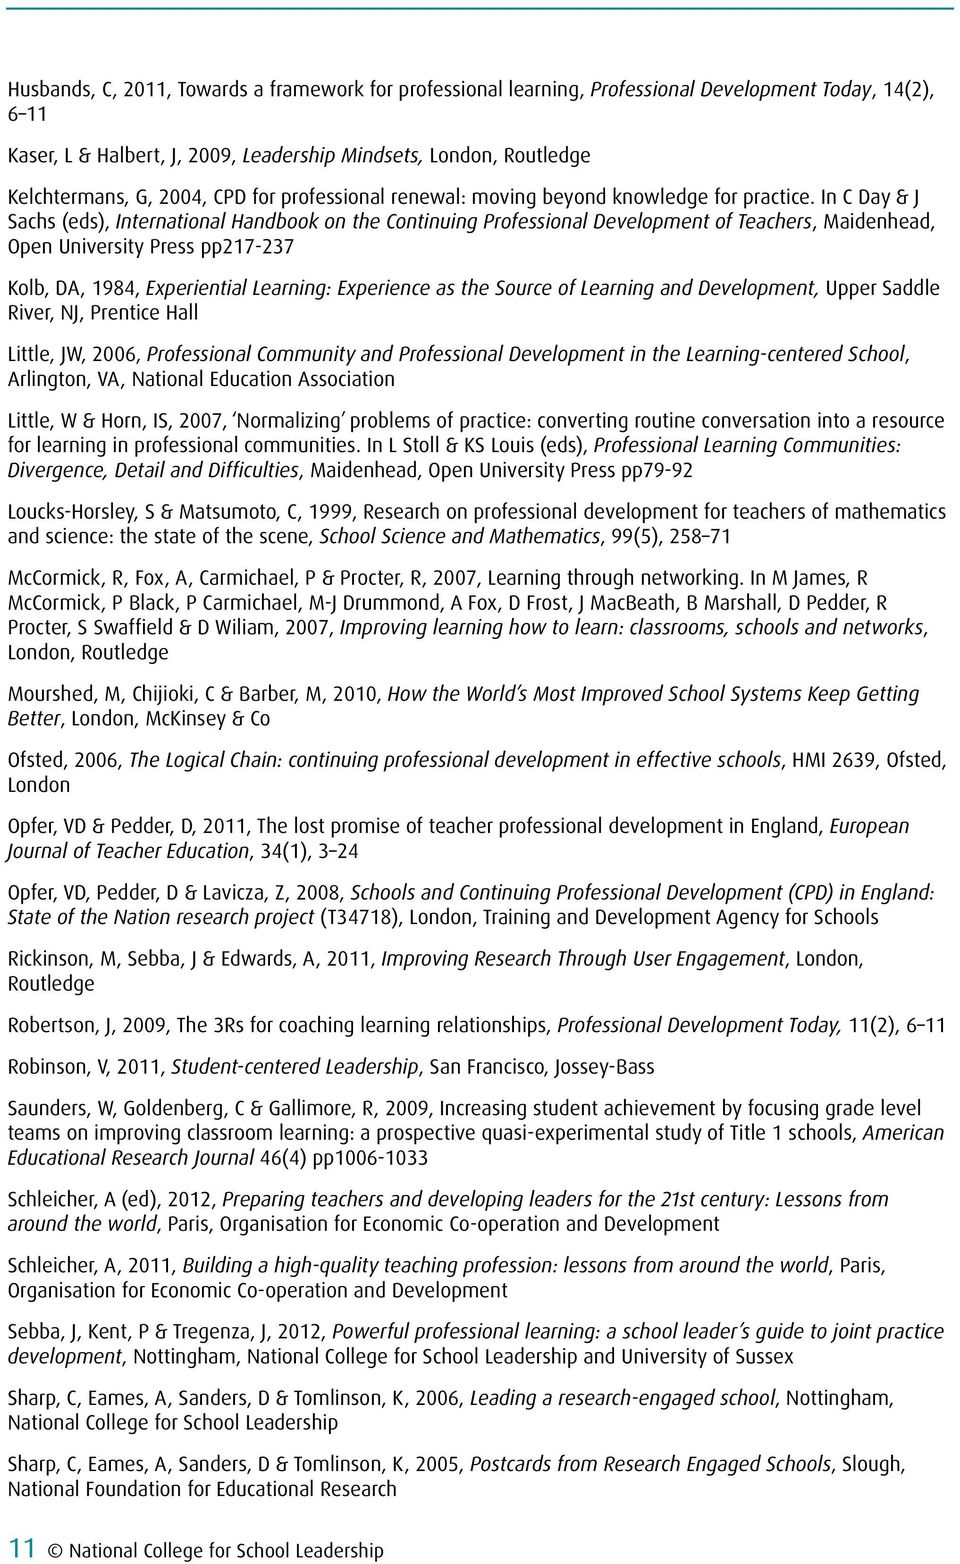 In C Day & J Sachs (eds), International Handbook on the Continuing Professional Development of Teachers, Maidenhead, Open University Press pp217-237 Kolb, DA, 1984, Experiential Learning: Experience